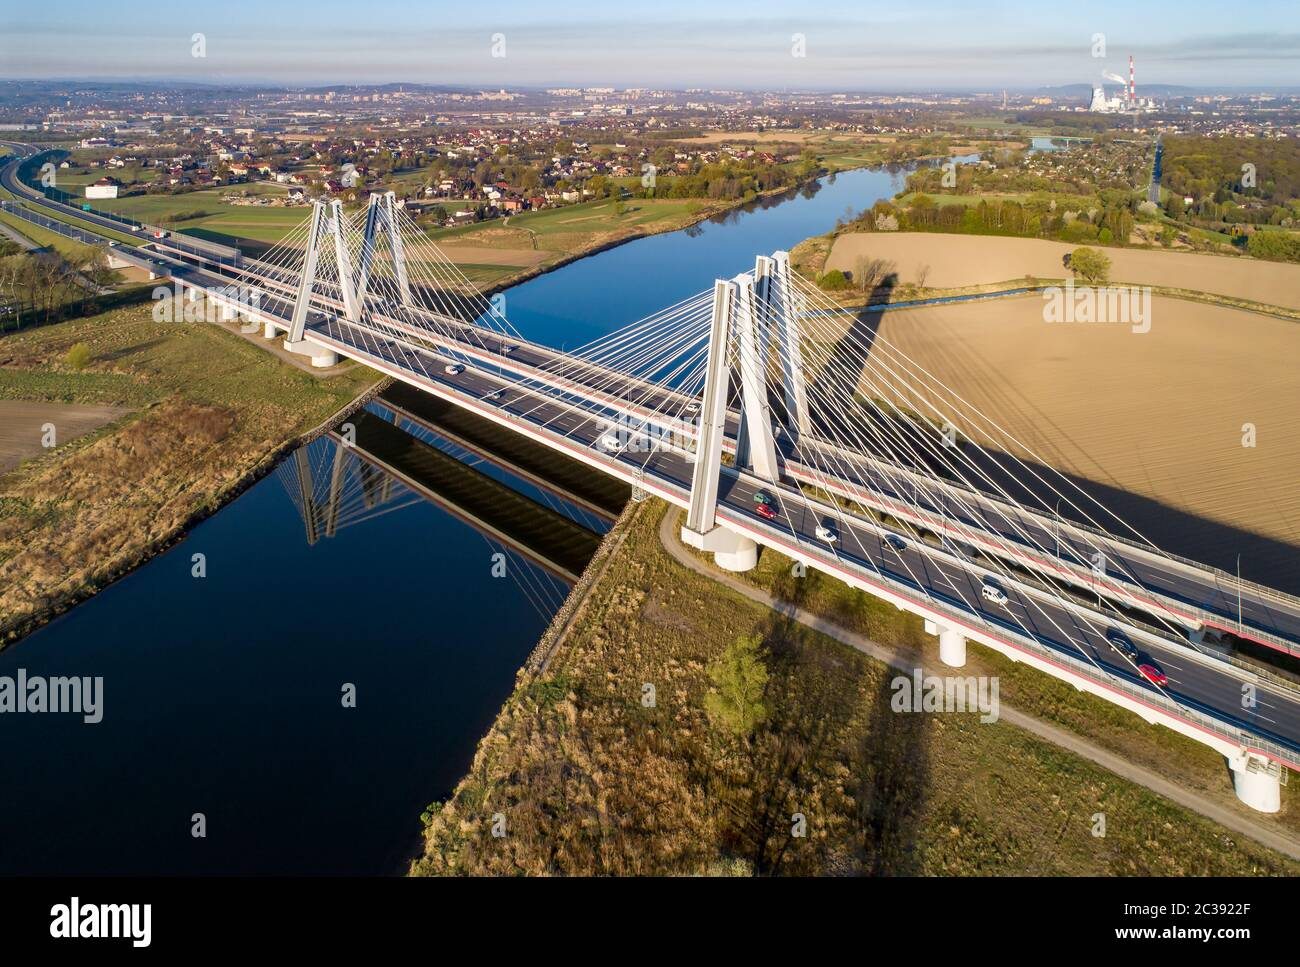 New modern double cable-stayed bridge with wide three-lane roads over Vistula River in Krakow, Poland, and its reflection in water at sunrise. Part of Stock Photo